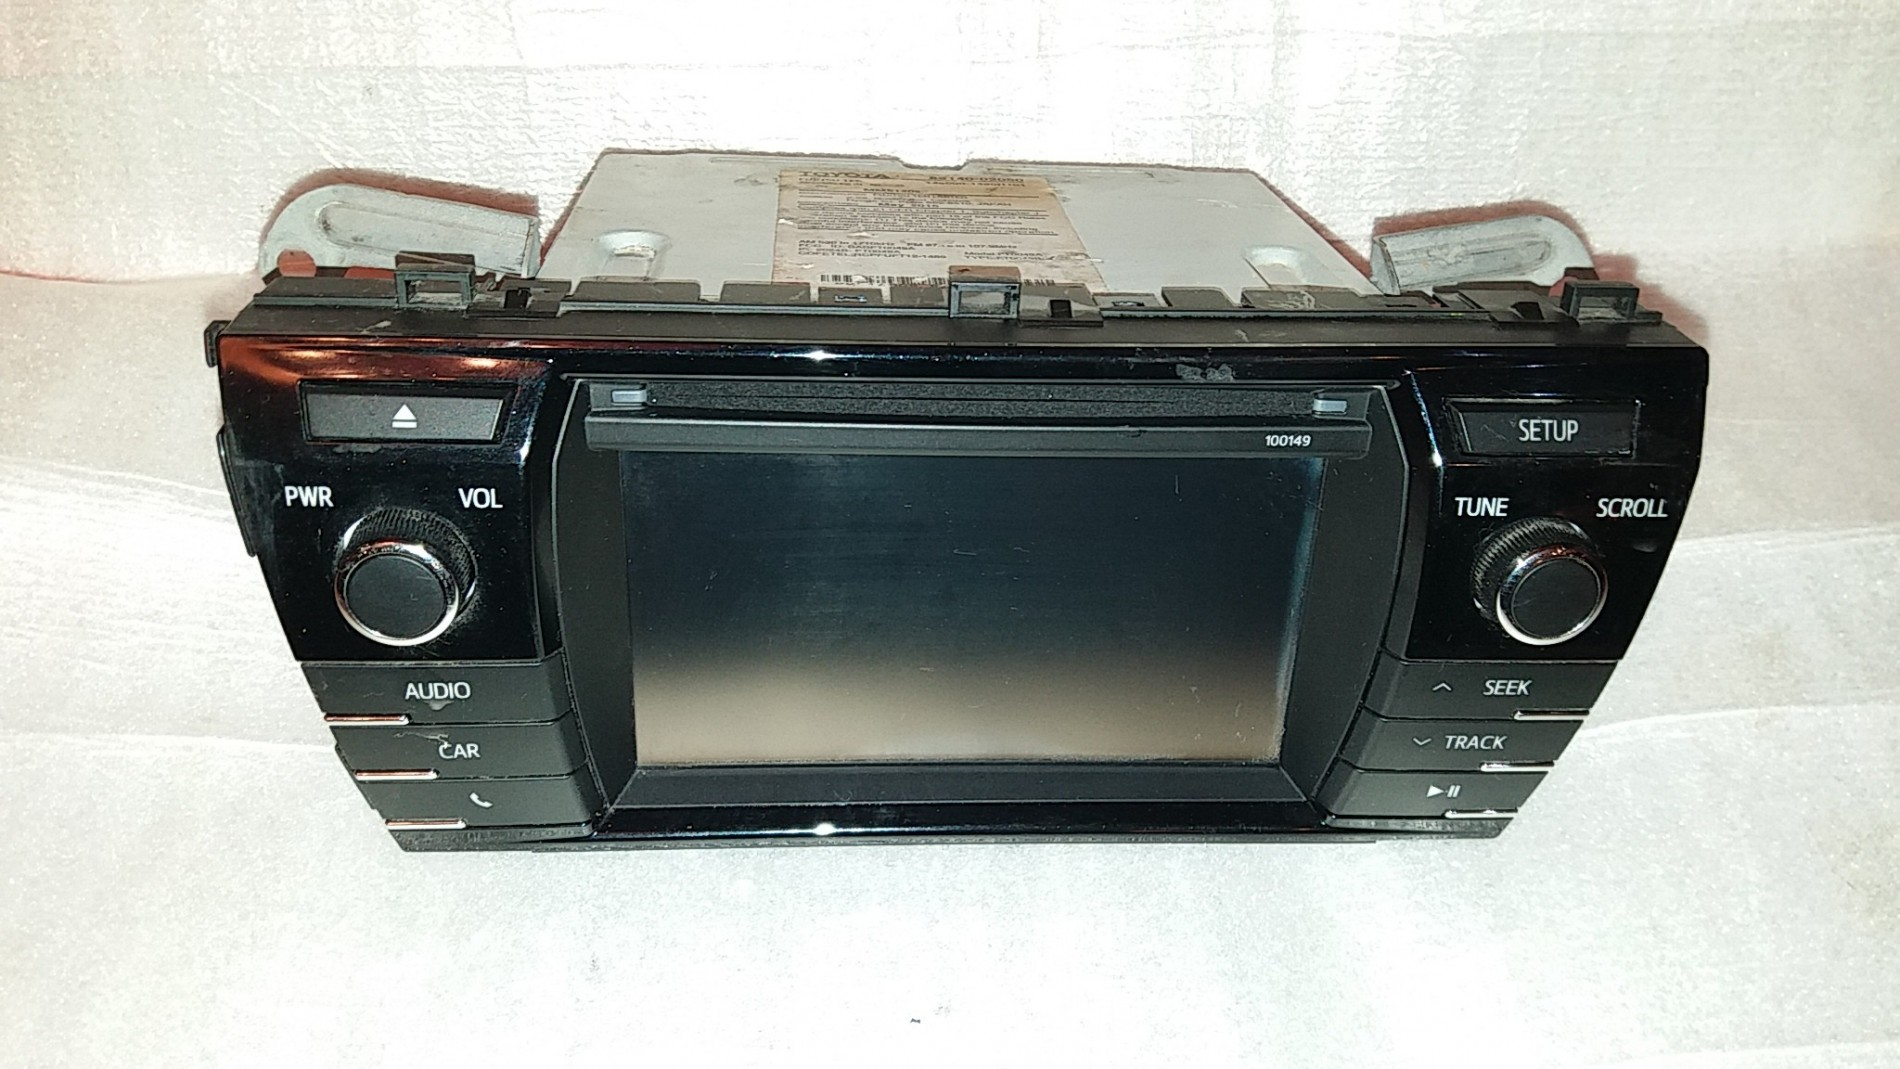 TOYOTA COROLLA RADIO CD RECEIVER DISPLAY 2014-2016 86140